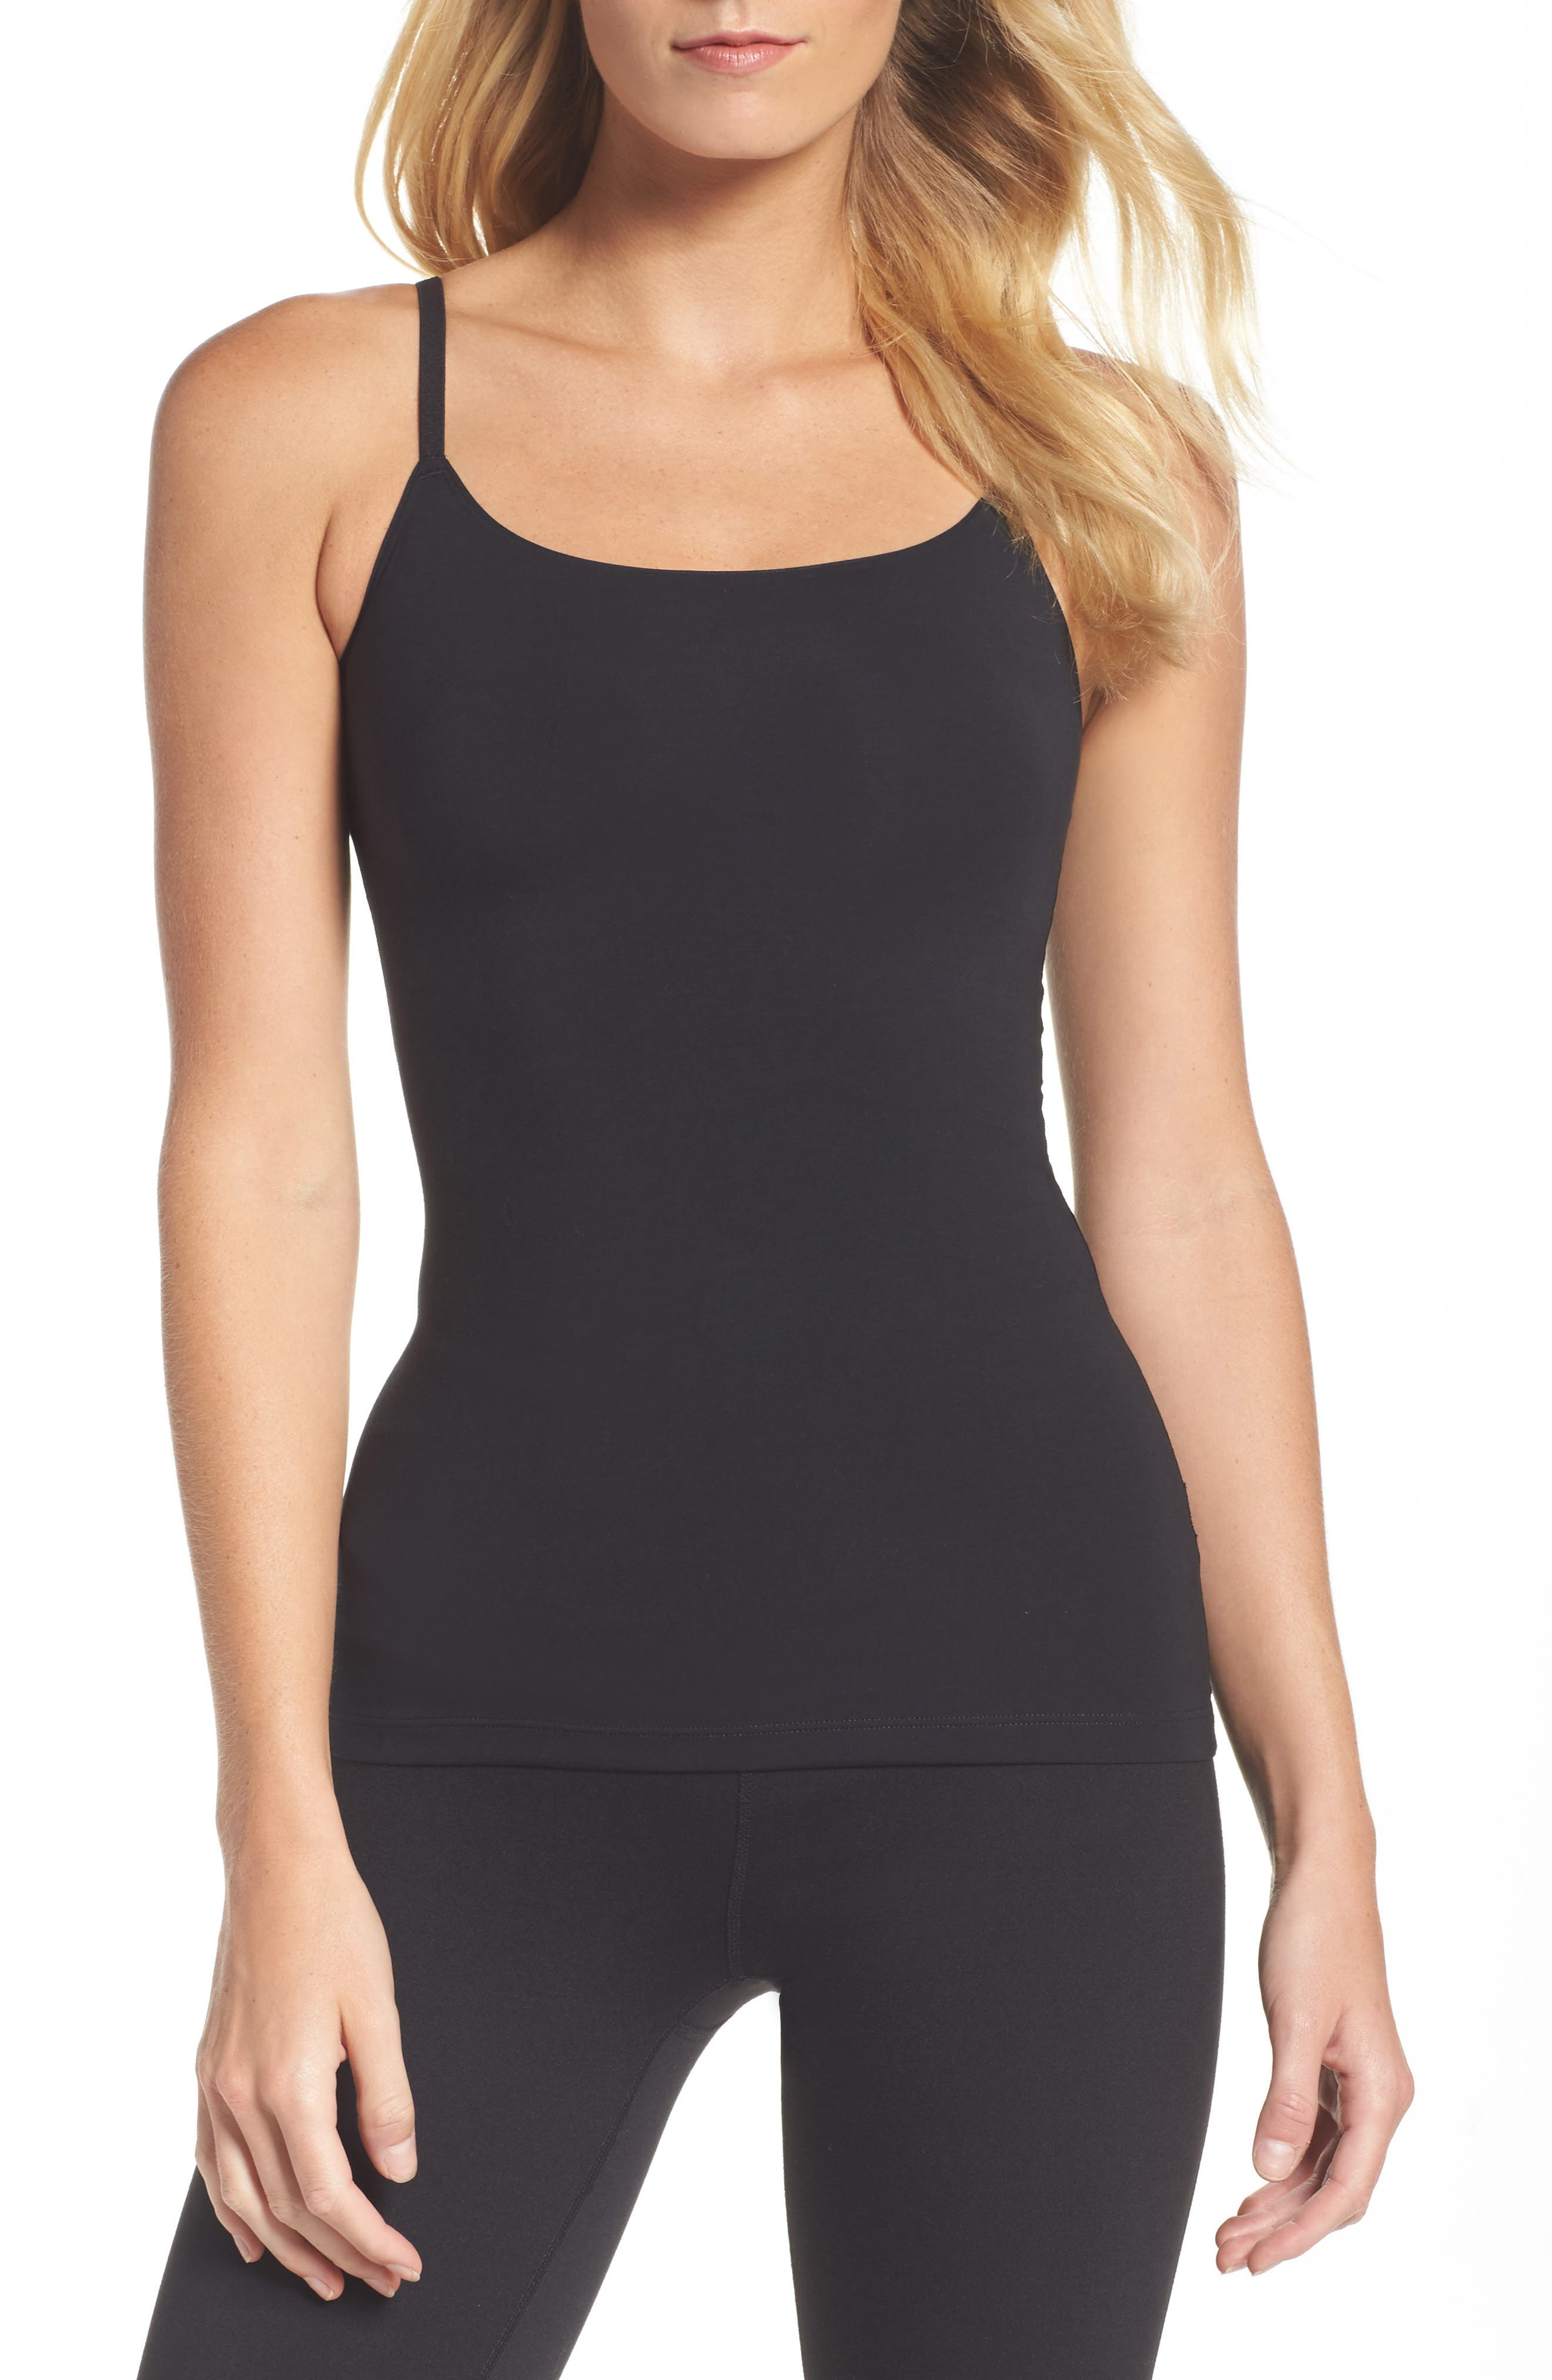 In & Out Camisole,                             Main thumbnail 1, color,                             VERY BLACK